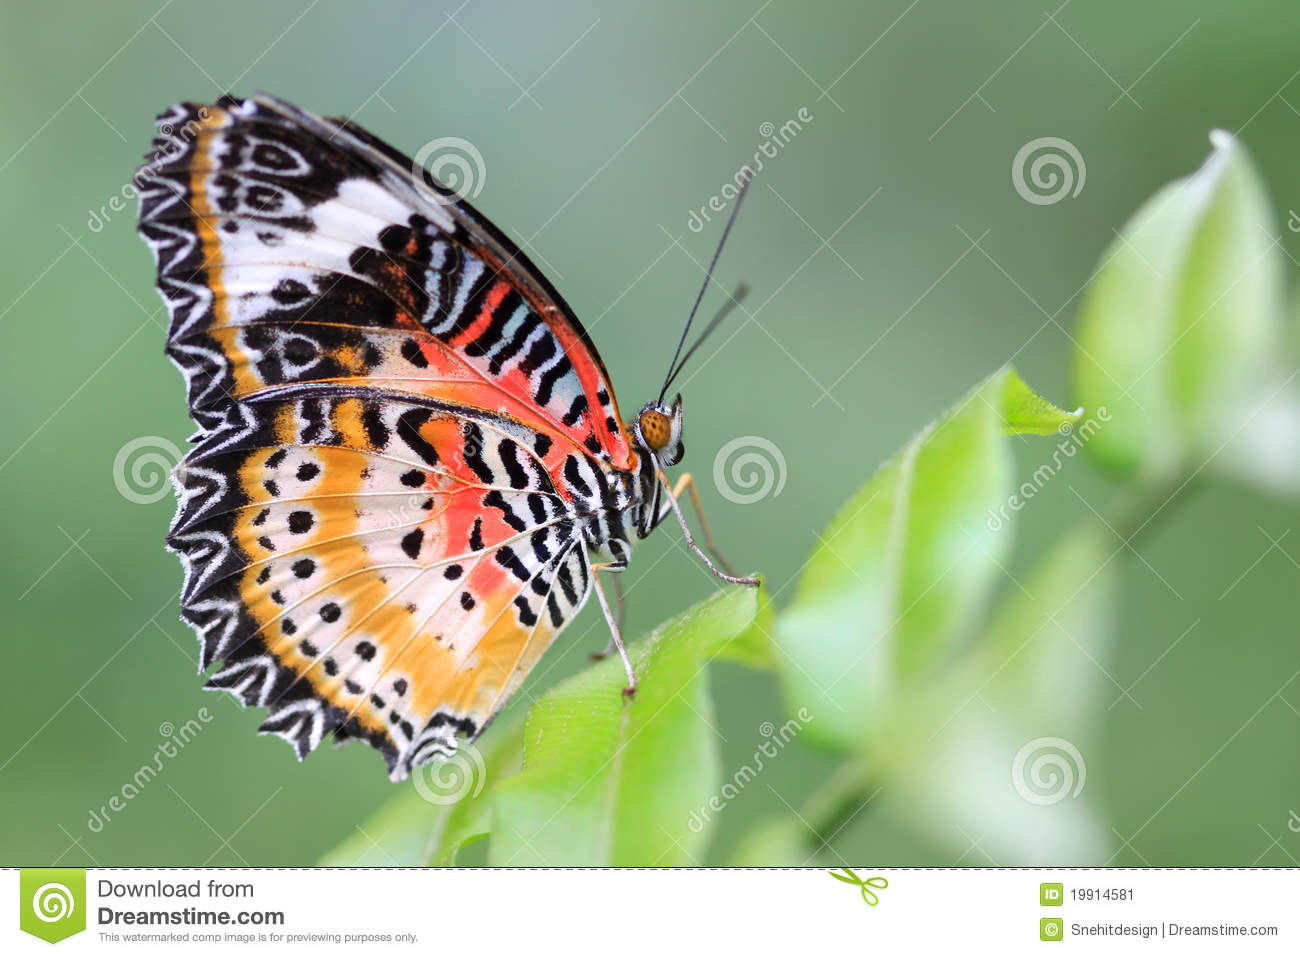 Butterly Stock Image - Image: 19914581